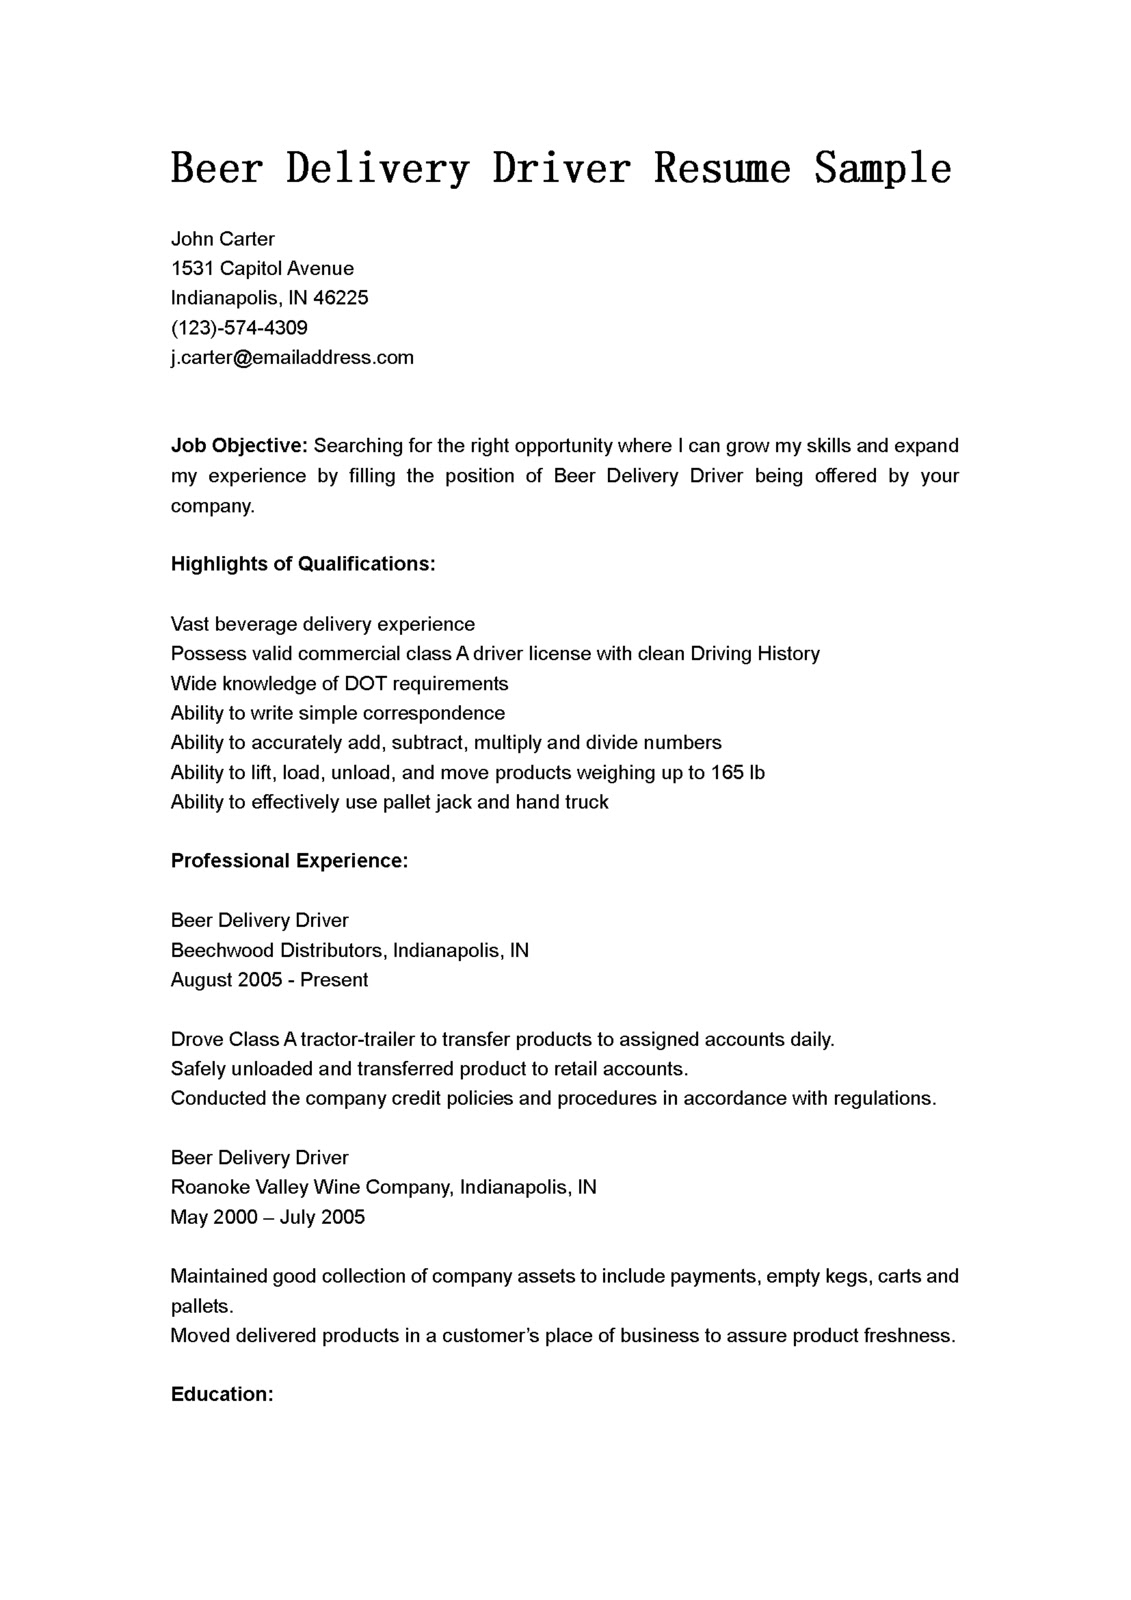 Sample driver resume dawaydabrowa sample driver resume thecheapjerseys Gallery